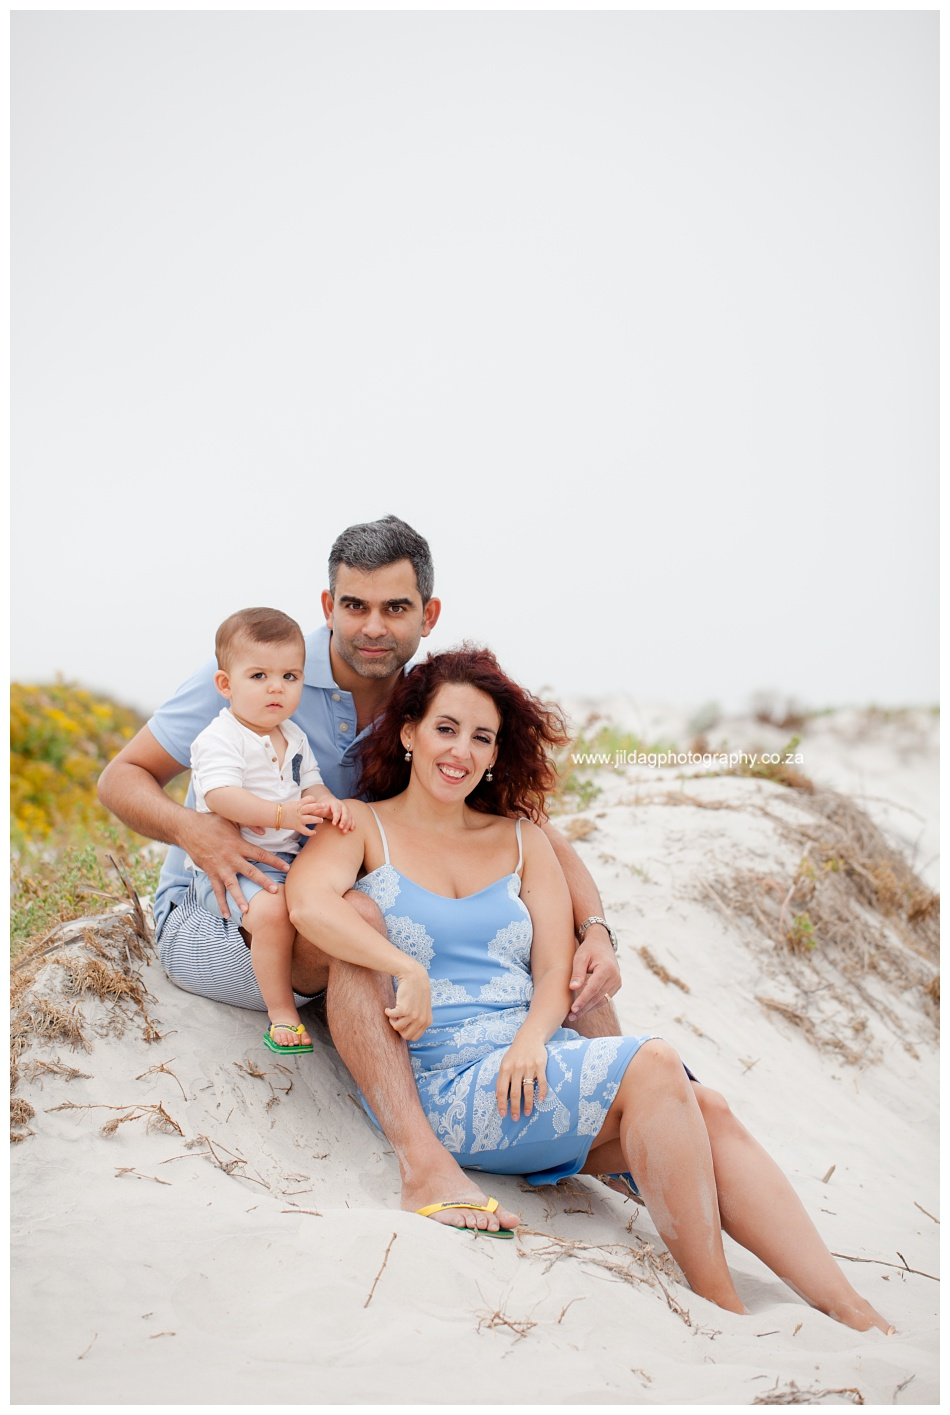 Jilda-G-Photography-family-photographer-beach_0681